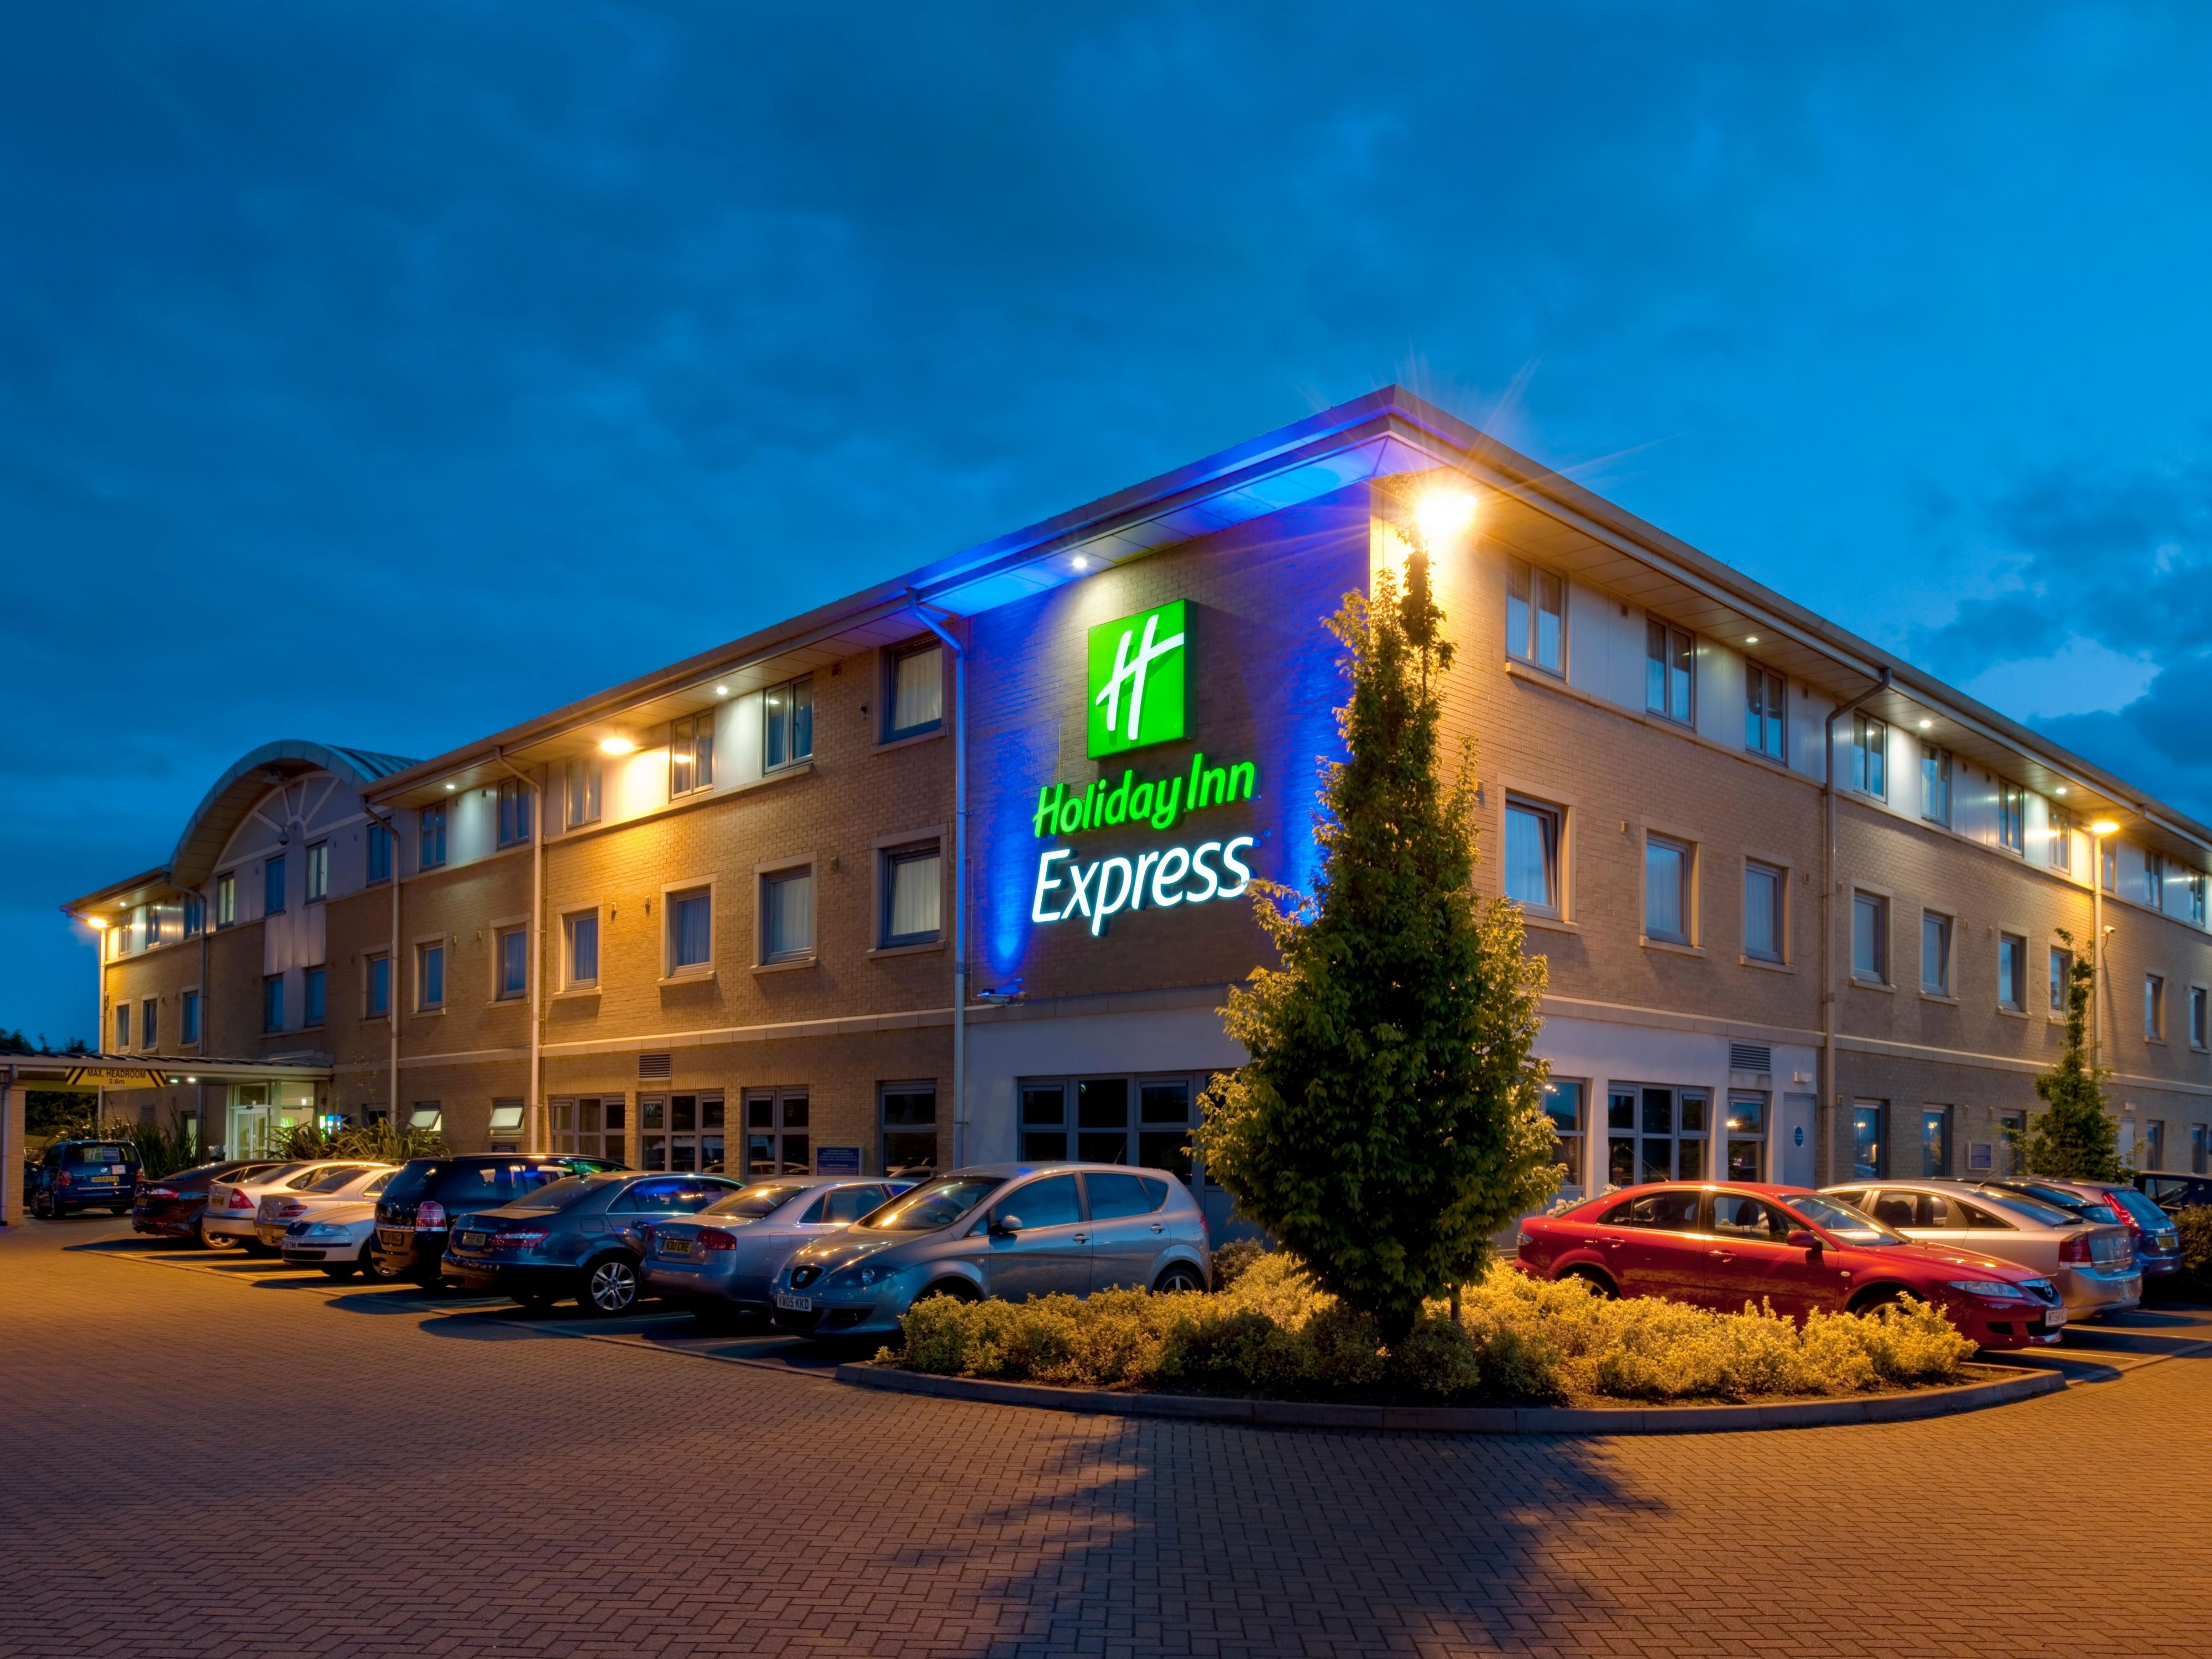 Our hotel at East Midlands Airport is simple and convenient